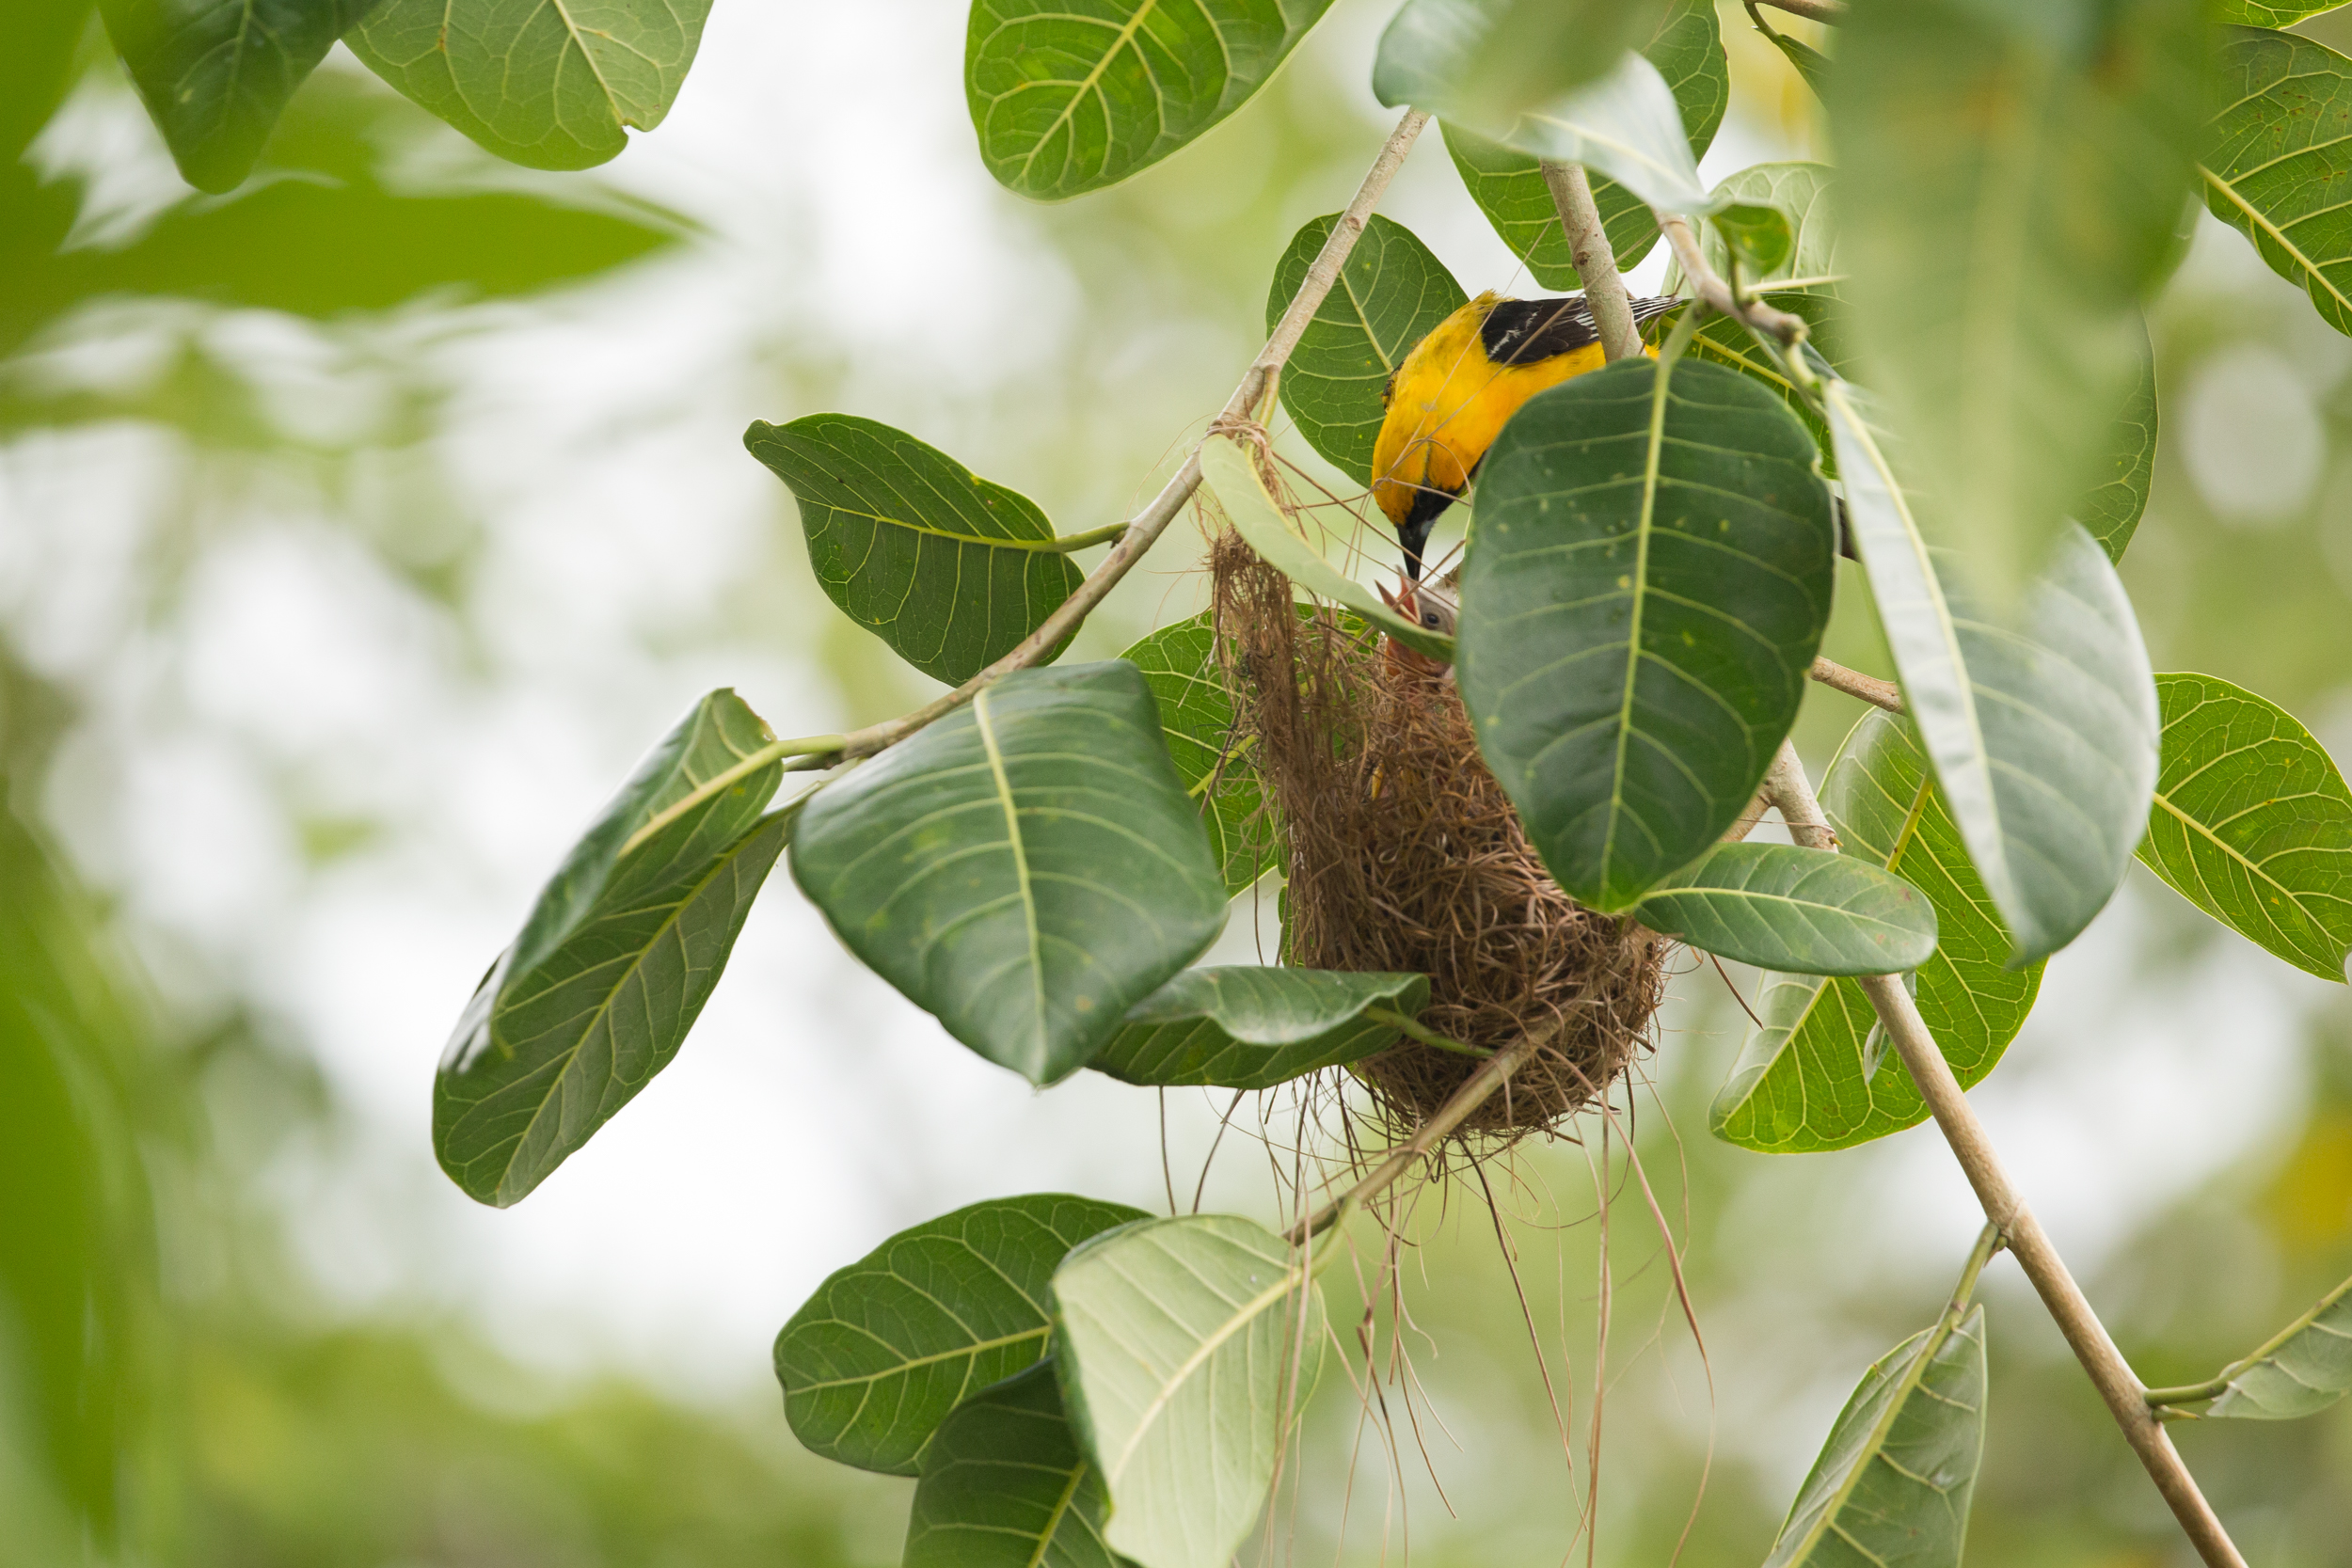 hooded oriole (Icterus cucullatus) - A male feeding its chicks in the nest. Native to the southwestern US, Mexico and Belize, these birds mostly eat fruit, nectar and insects.